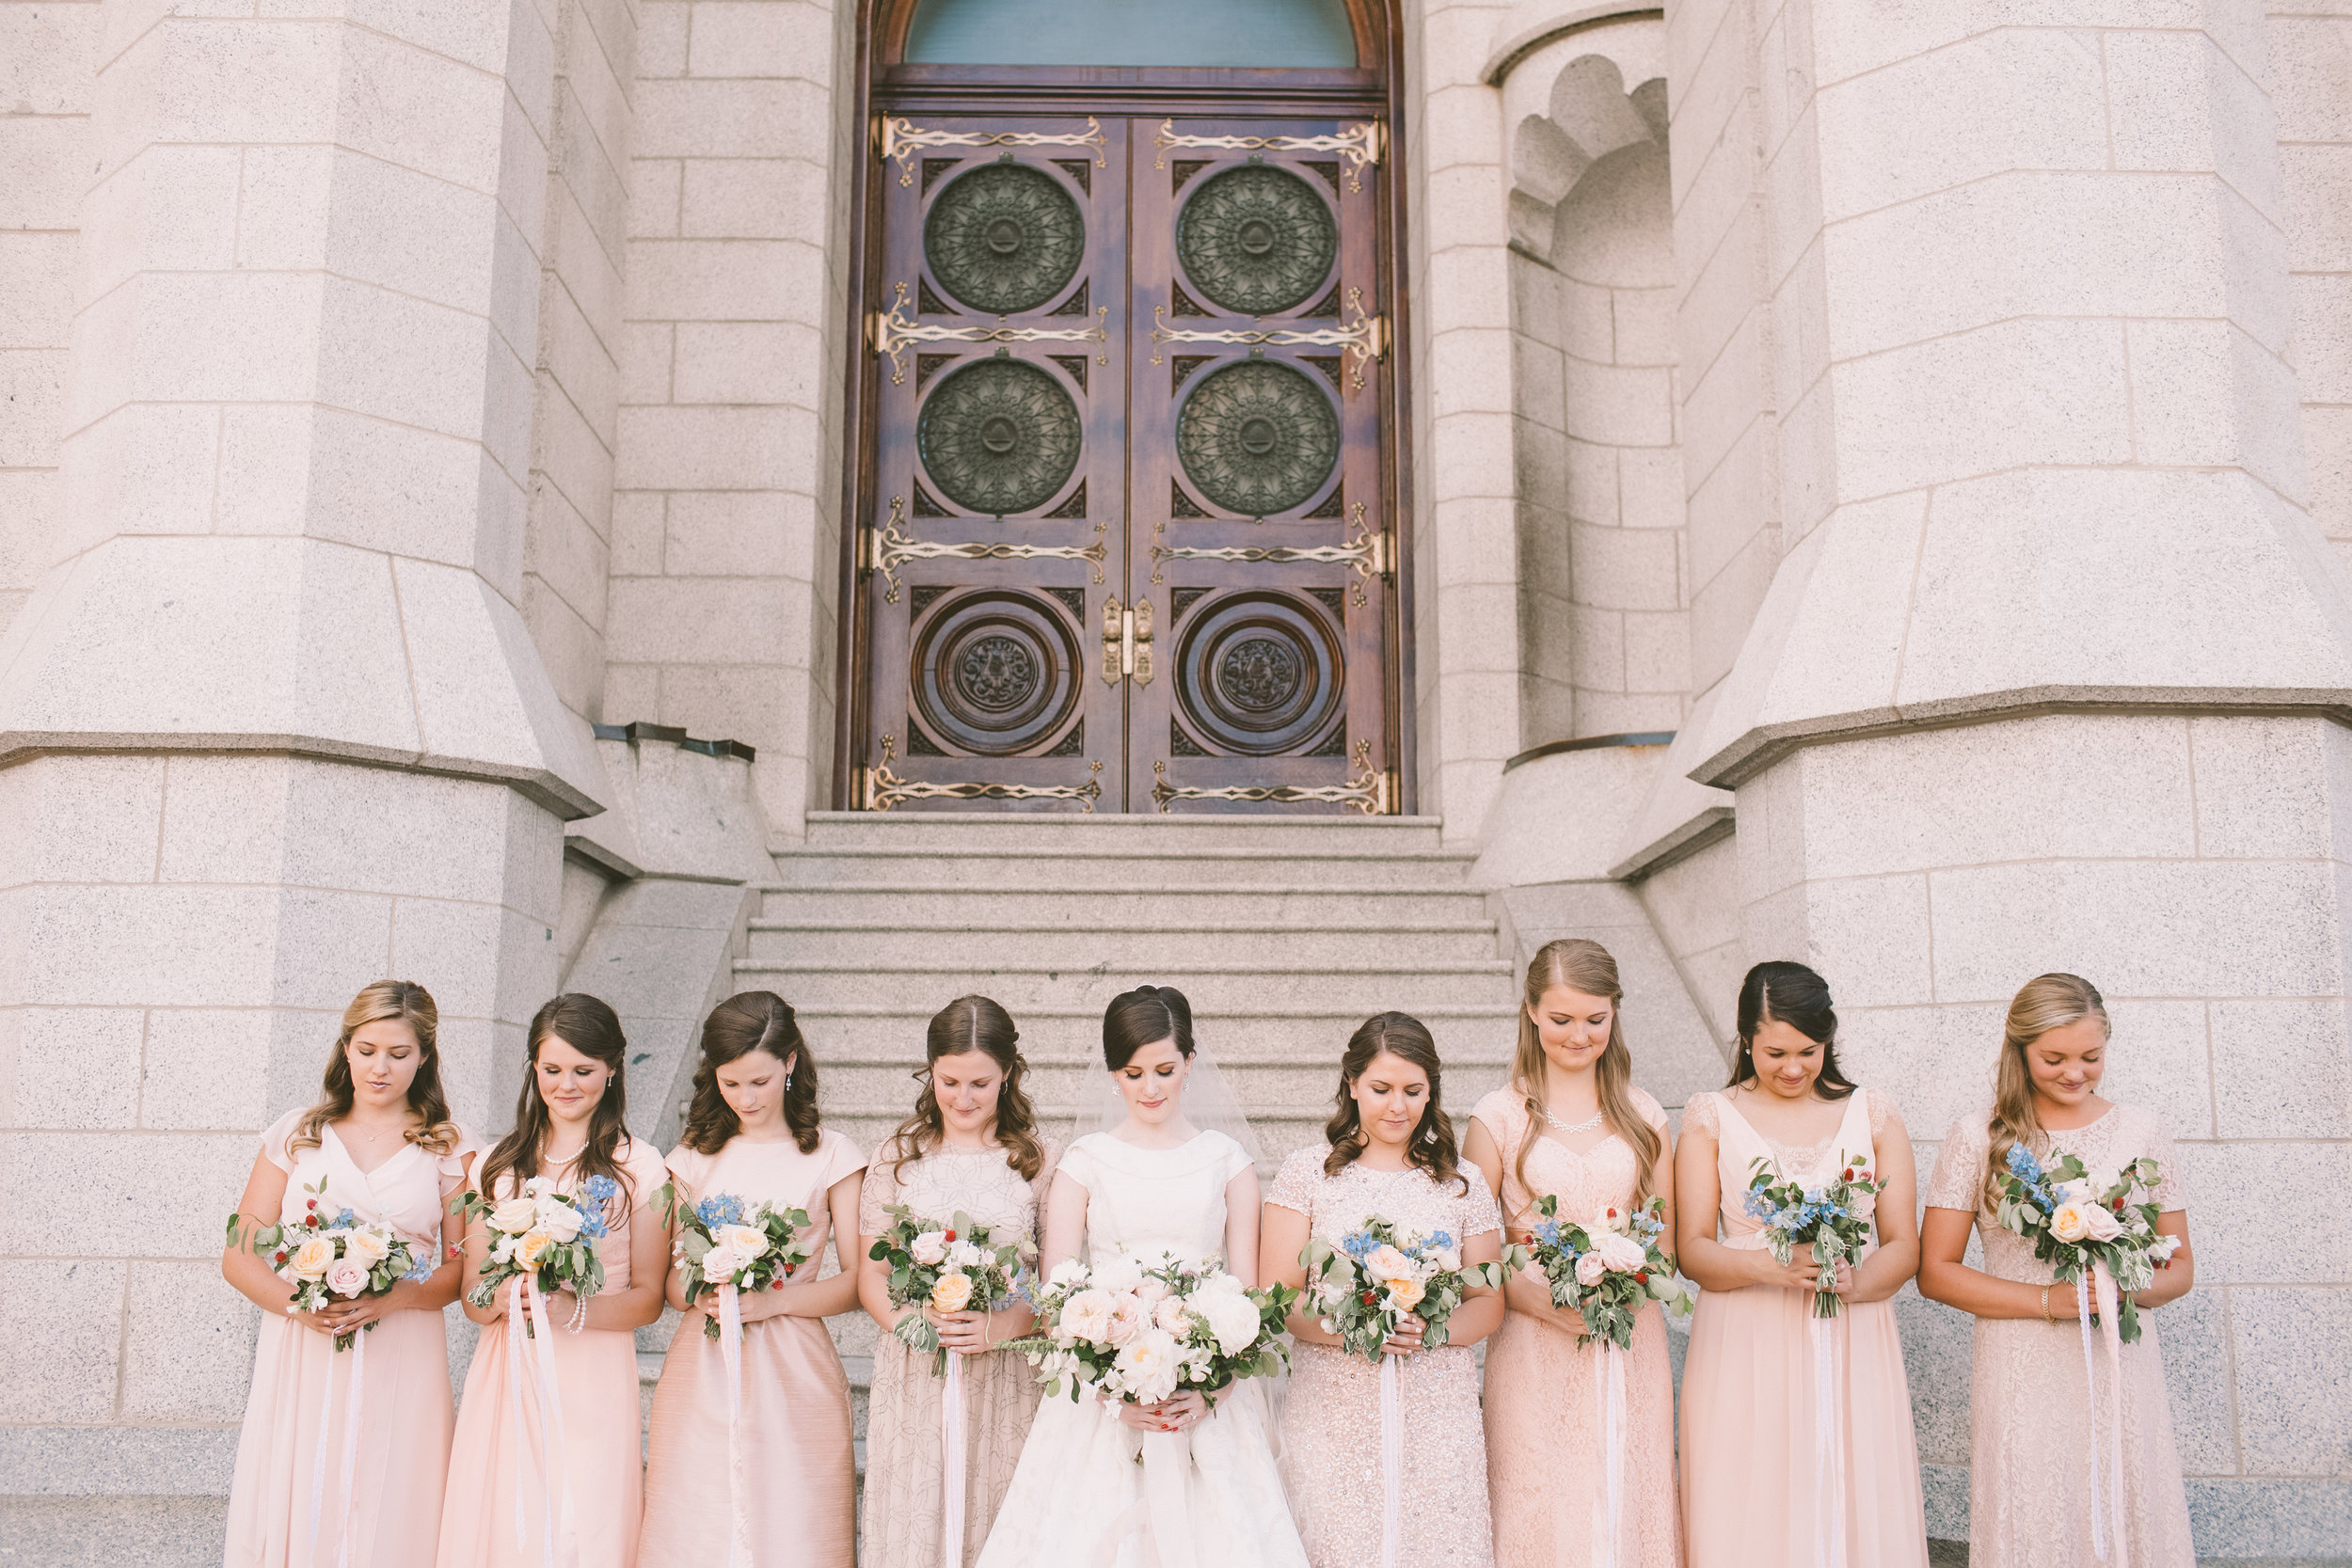 Utah State Capitol Wedding | Colorful Summer Wedding | Michelle Leo Events | Utah Event Planner and Designer | Jessica Janae Photography